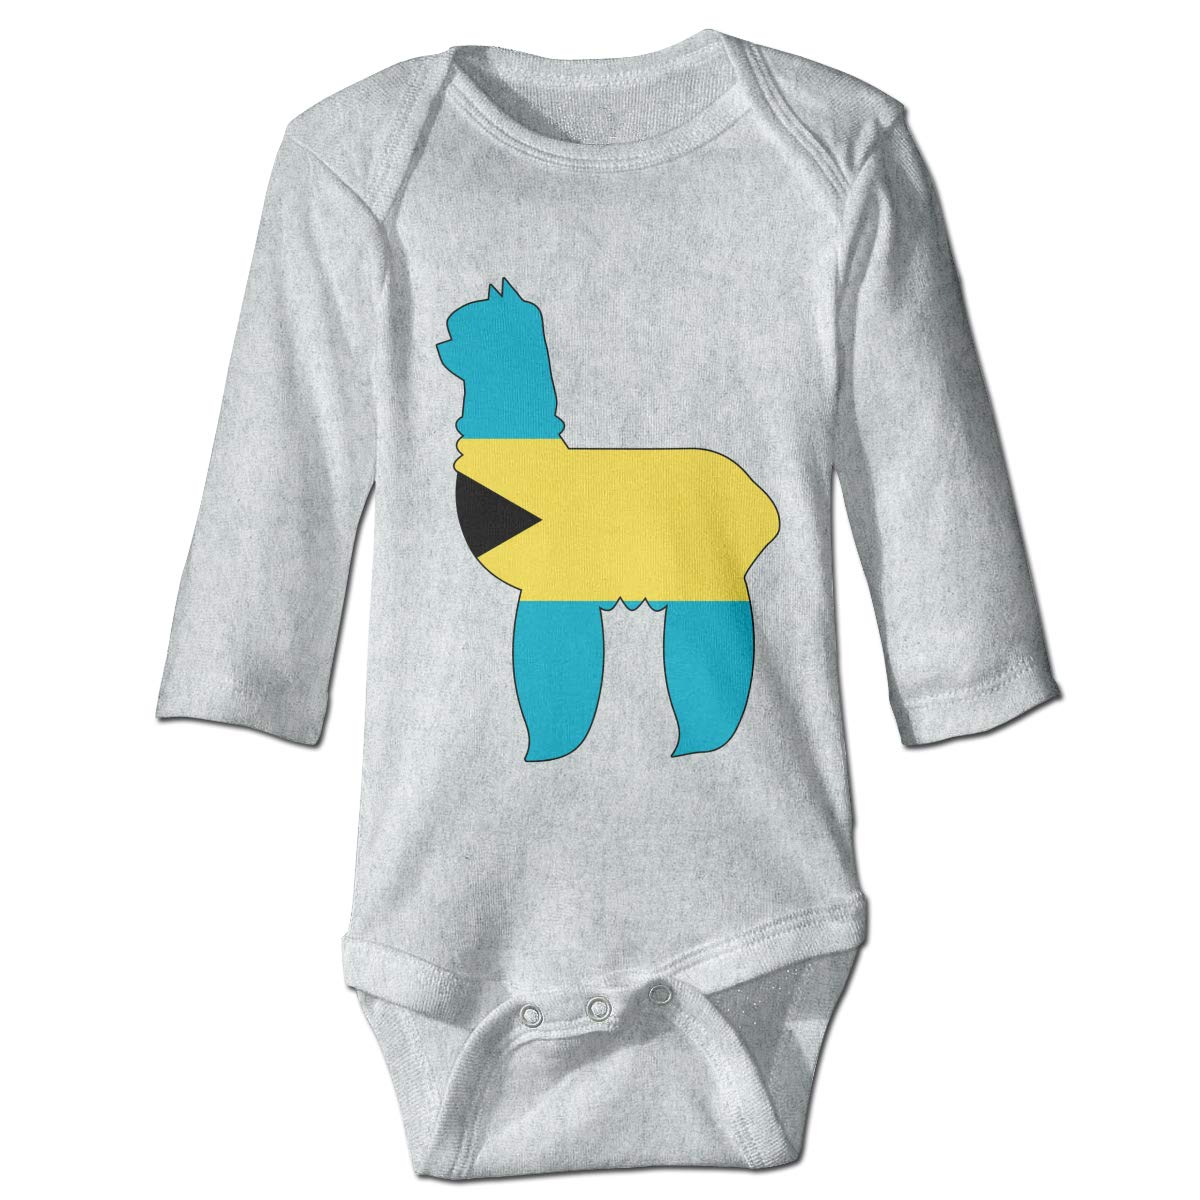 Infant Baby Girls Long Sleeve Baby Clothes Bahamas Flag with Alpaca Unisex Button Playsuit Outfit Clothes